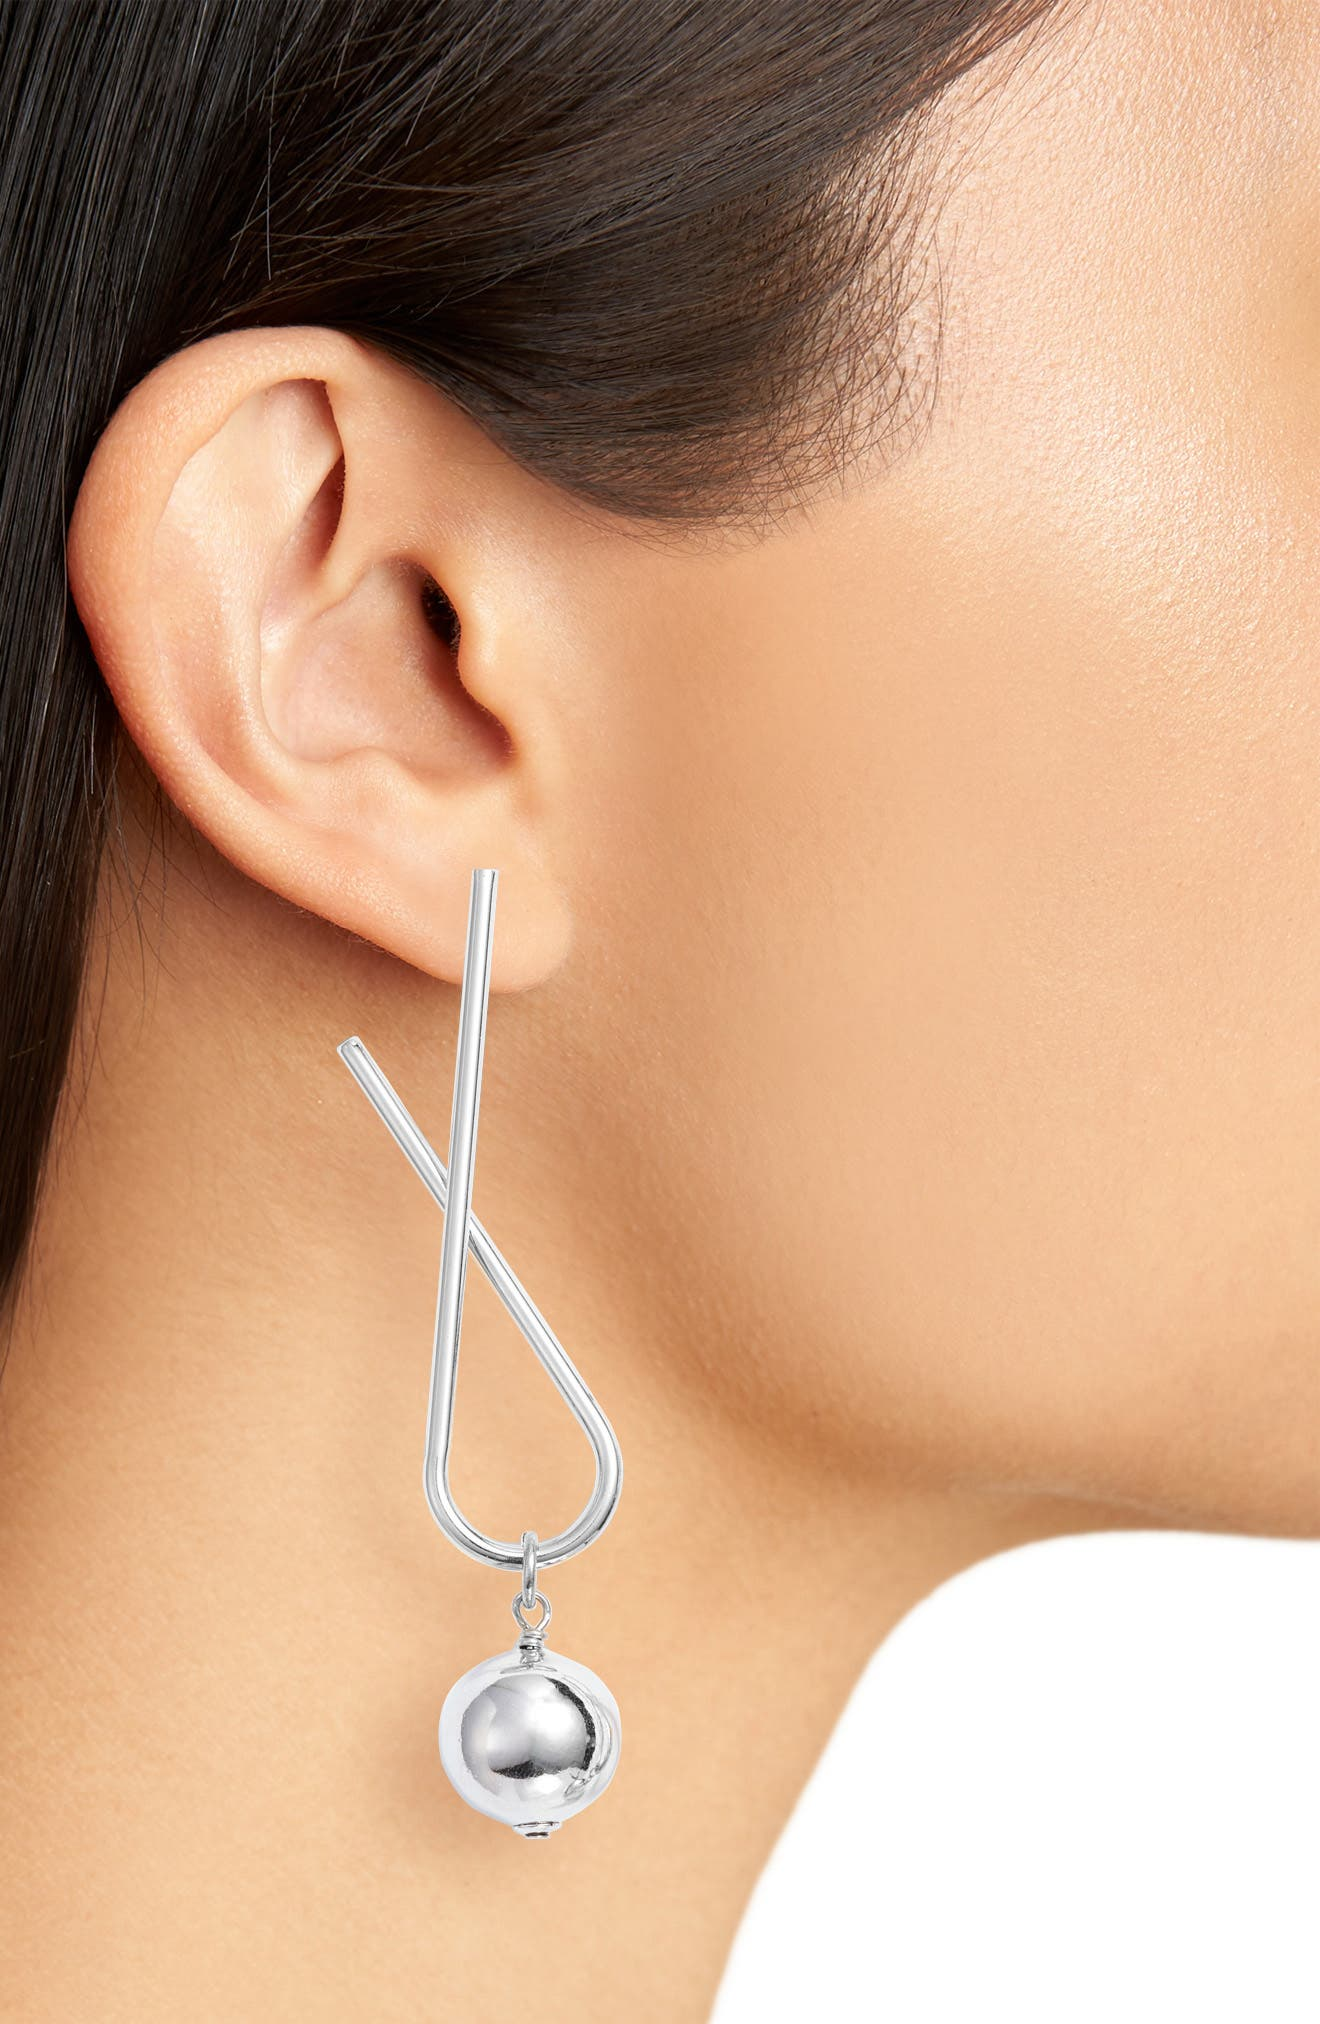 Sway Earrings,                             Alternate thumbnail 2, color,                             SILVER